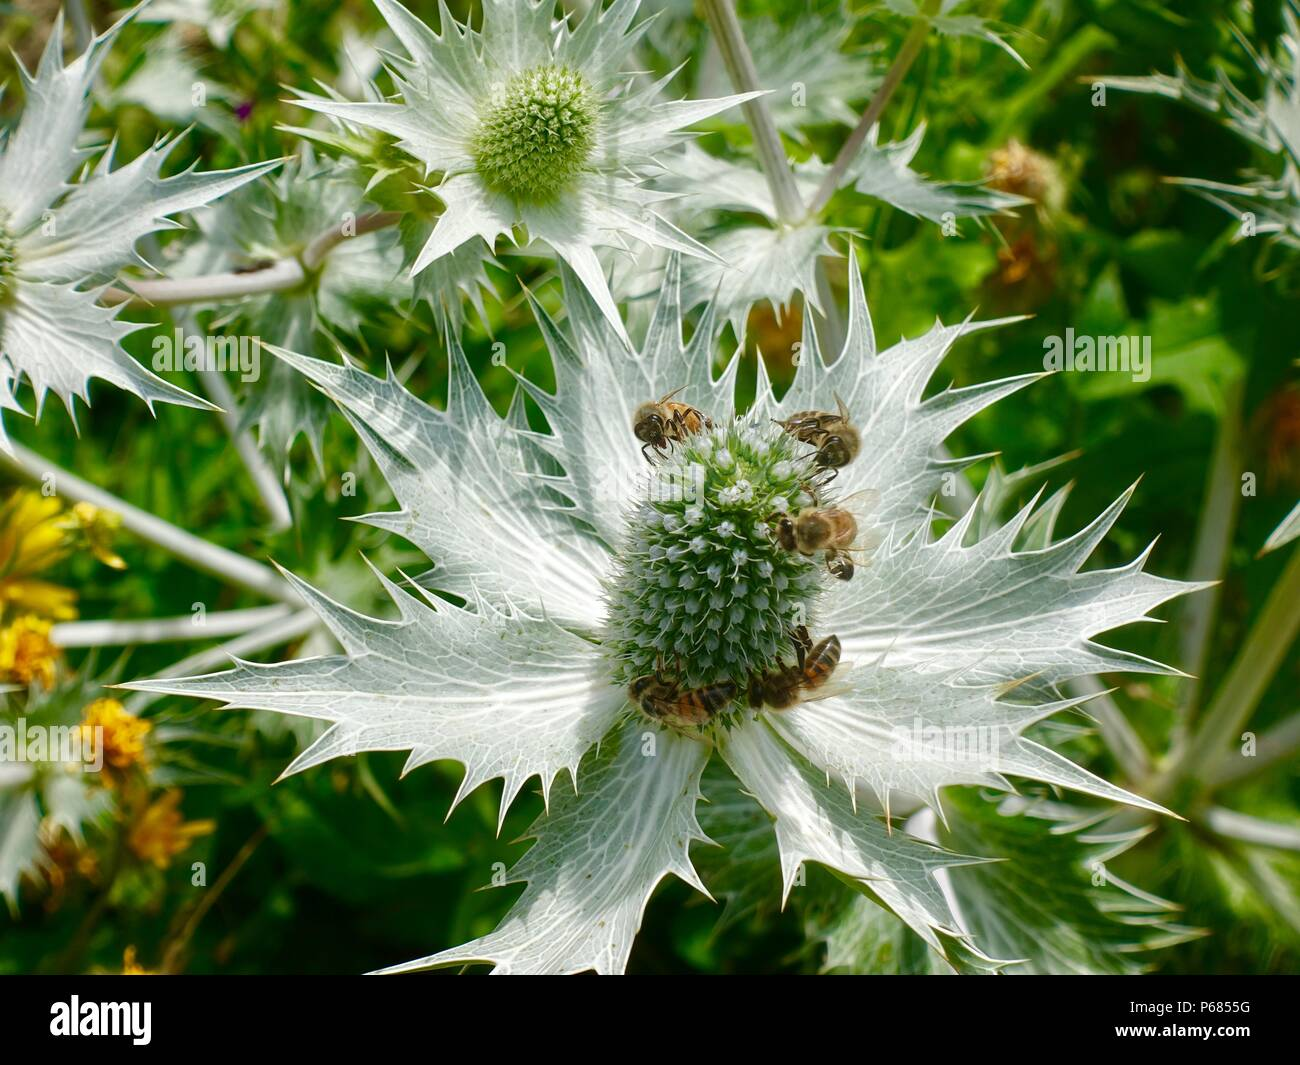 Eryngium giganteum, Sea holly, covered with pollinators, Northern France - Stock Image